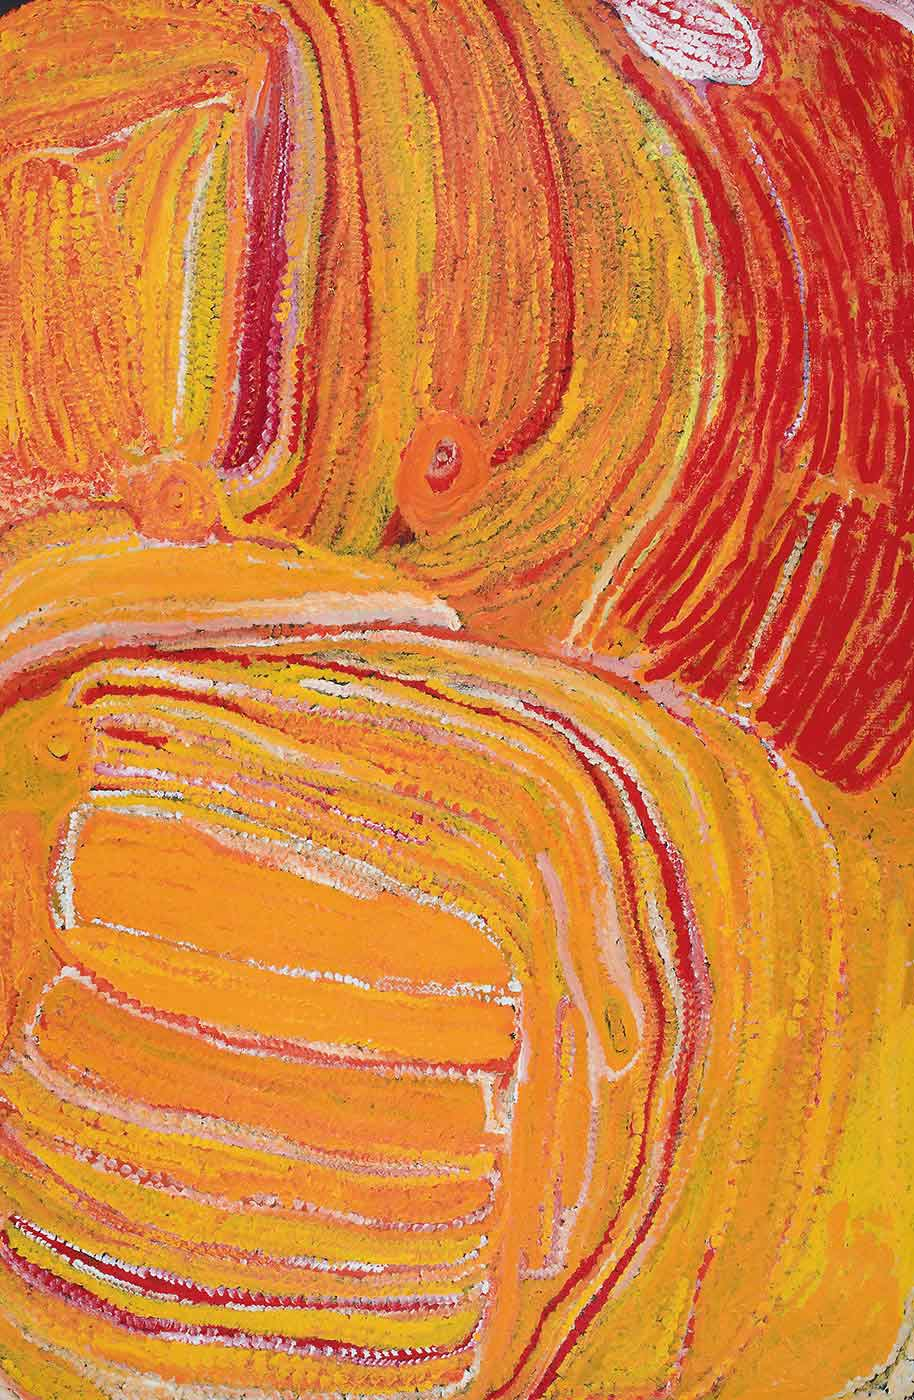 A textured yellow-orange toned painting on brown linen with a curved vertically lined red section in the top right corner with a white and red oval above it. On the top left and middle half of the painting are curved and straight vertical stripes in yellow, pink, orange, burgundy, red and white with two orange-yellow circles towards the middle section of the painting. The bottom left has an outlined rounded rectangle with horizontal stripes in yellow divided by thin dotted lines in white, red, orange or pink. The right side of the painting features a curved vertical section which follows the edge of the shape on the left and fills the area with yellows and a little bit of pink, white, red and orange. - click to view larger image